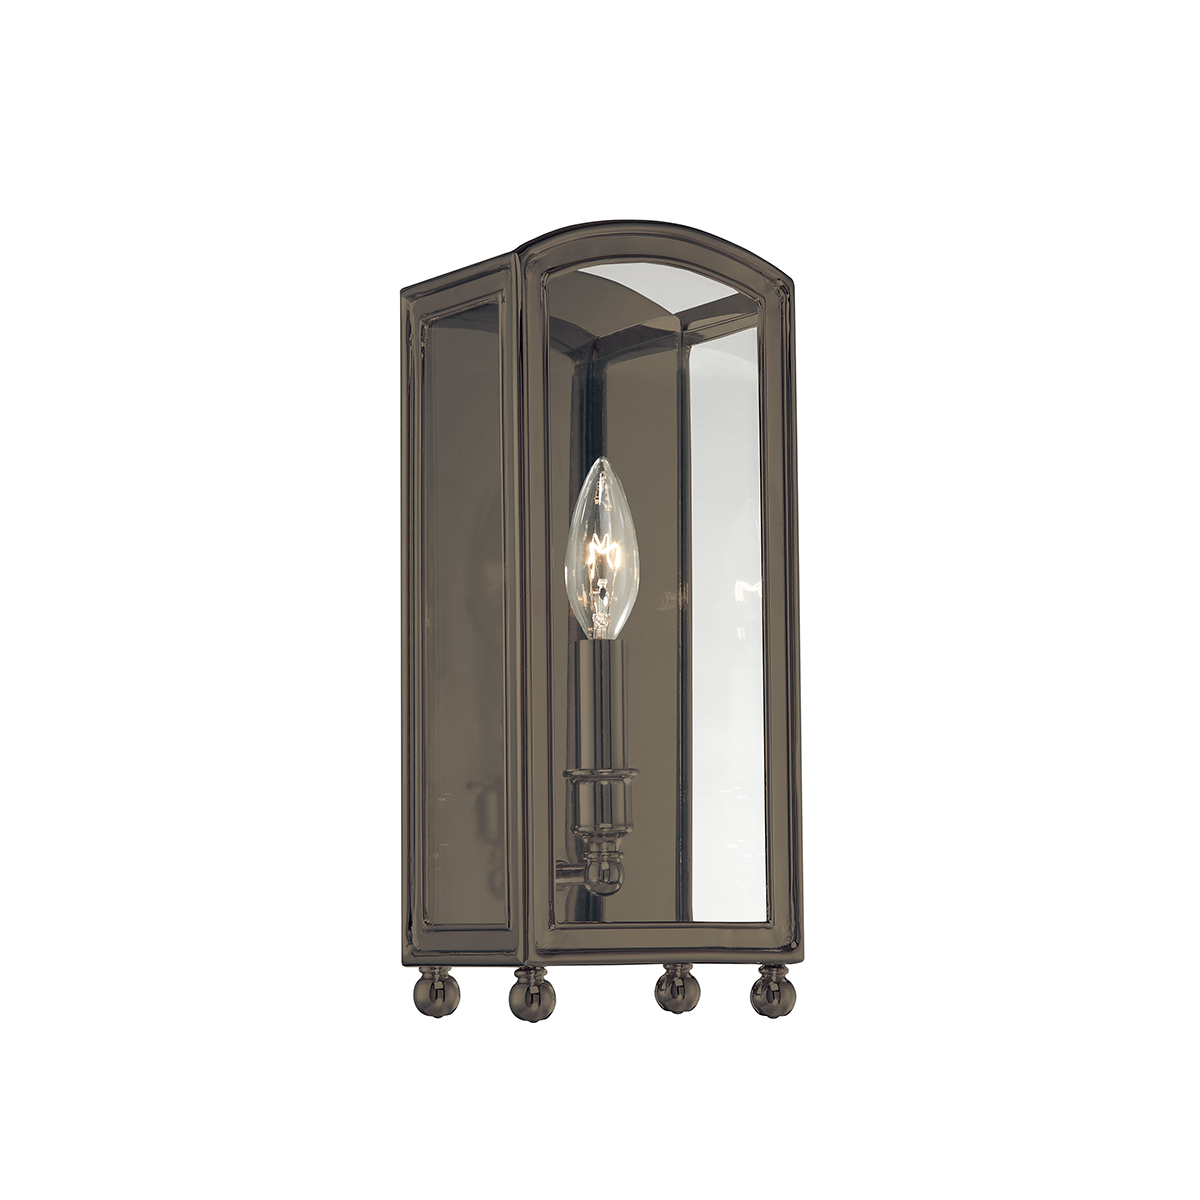 Hudson Valley Lighting Hudson Valley Lighting Millbrook Sconce - Distressed Bronze & Clear 8401-DB